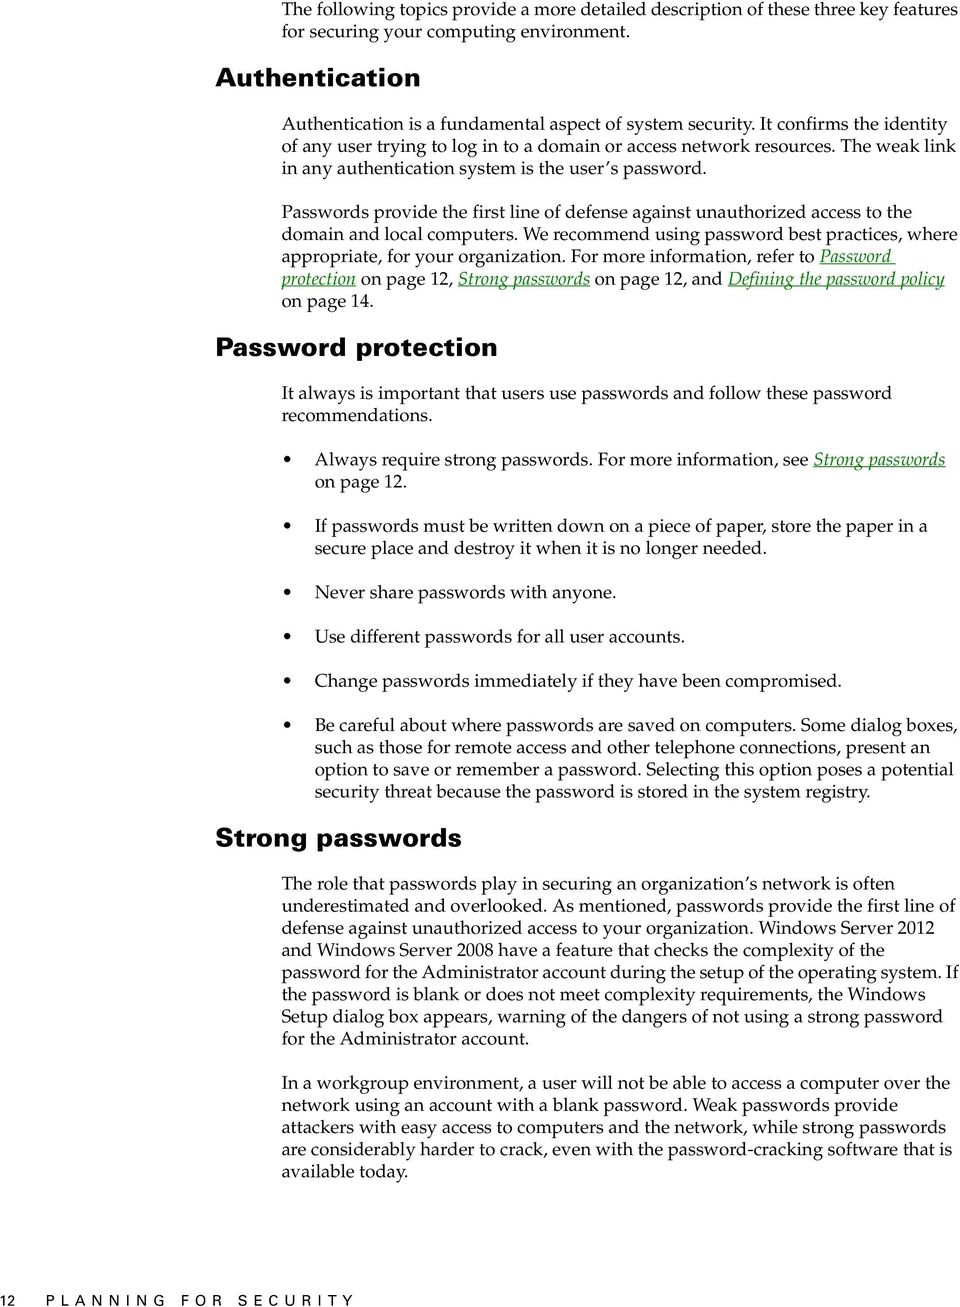 Passwords provide the first line of defense against unauthorized access to the domain and local computers. We recommend using password best practices, where appropriate, for your organization.